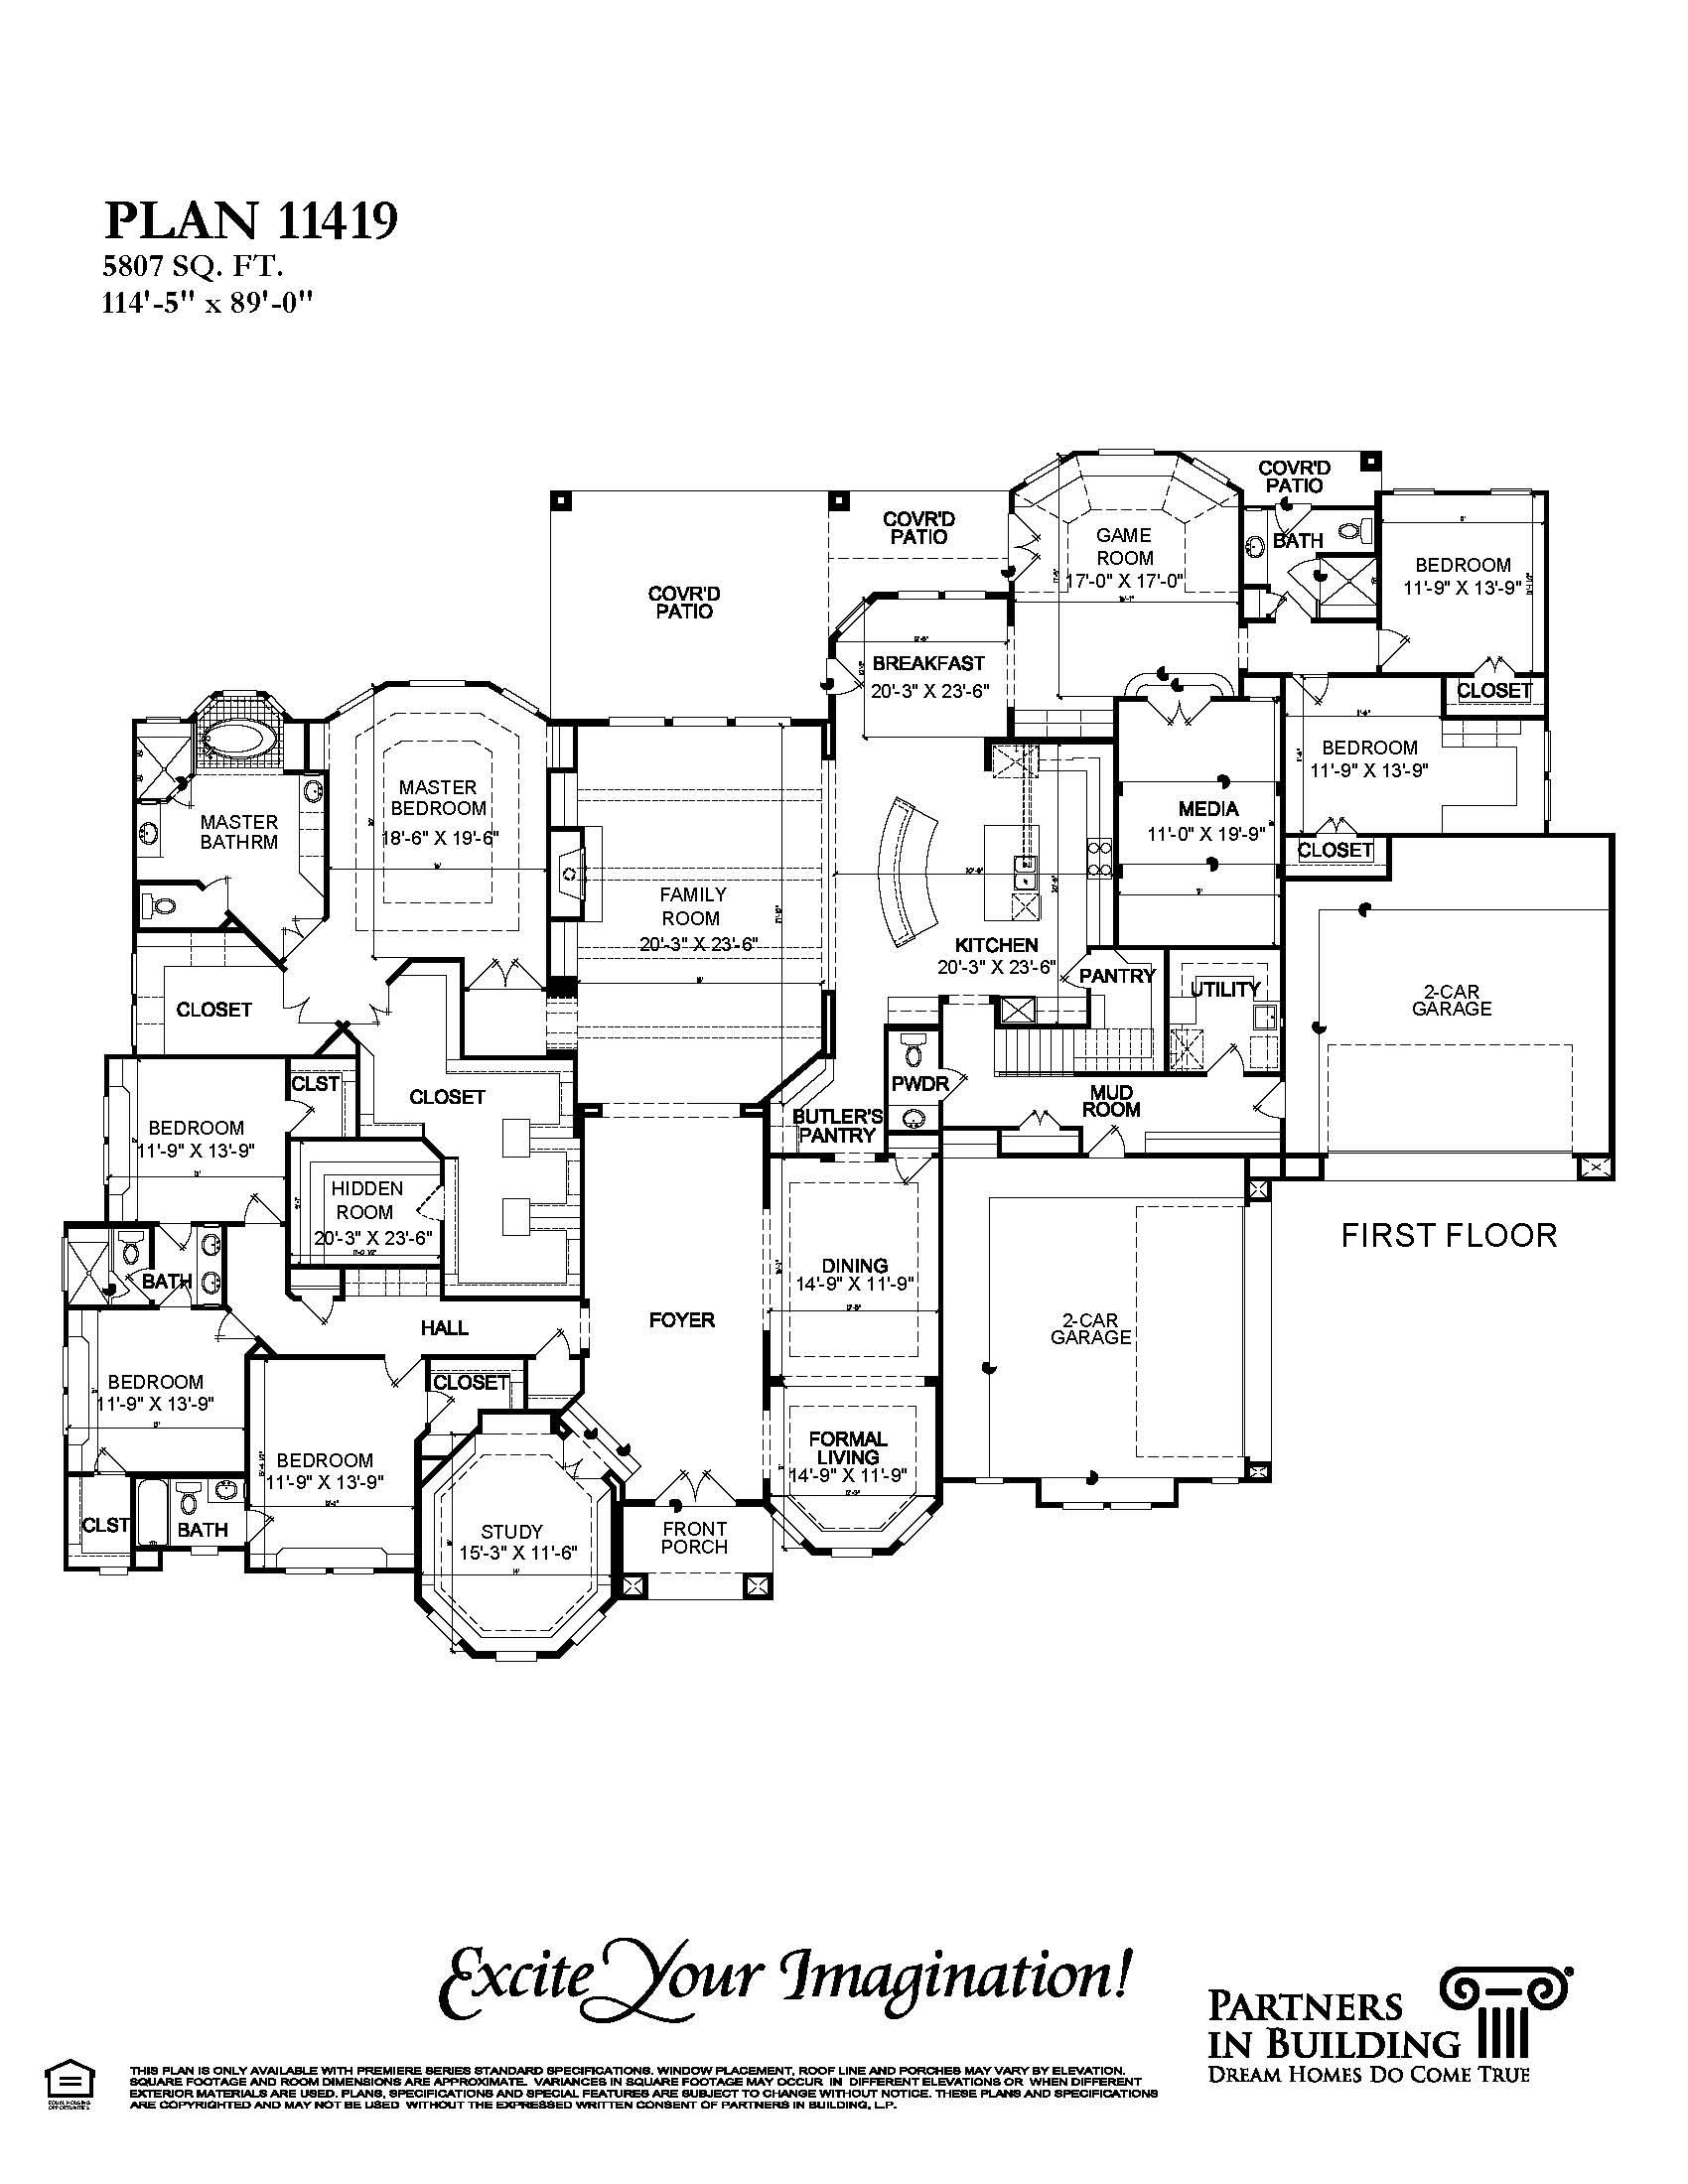 great 1 story plan by partners in building floor plans pinterest